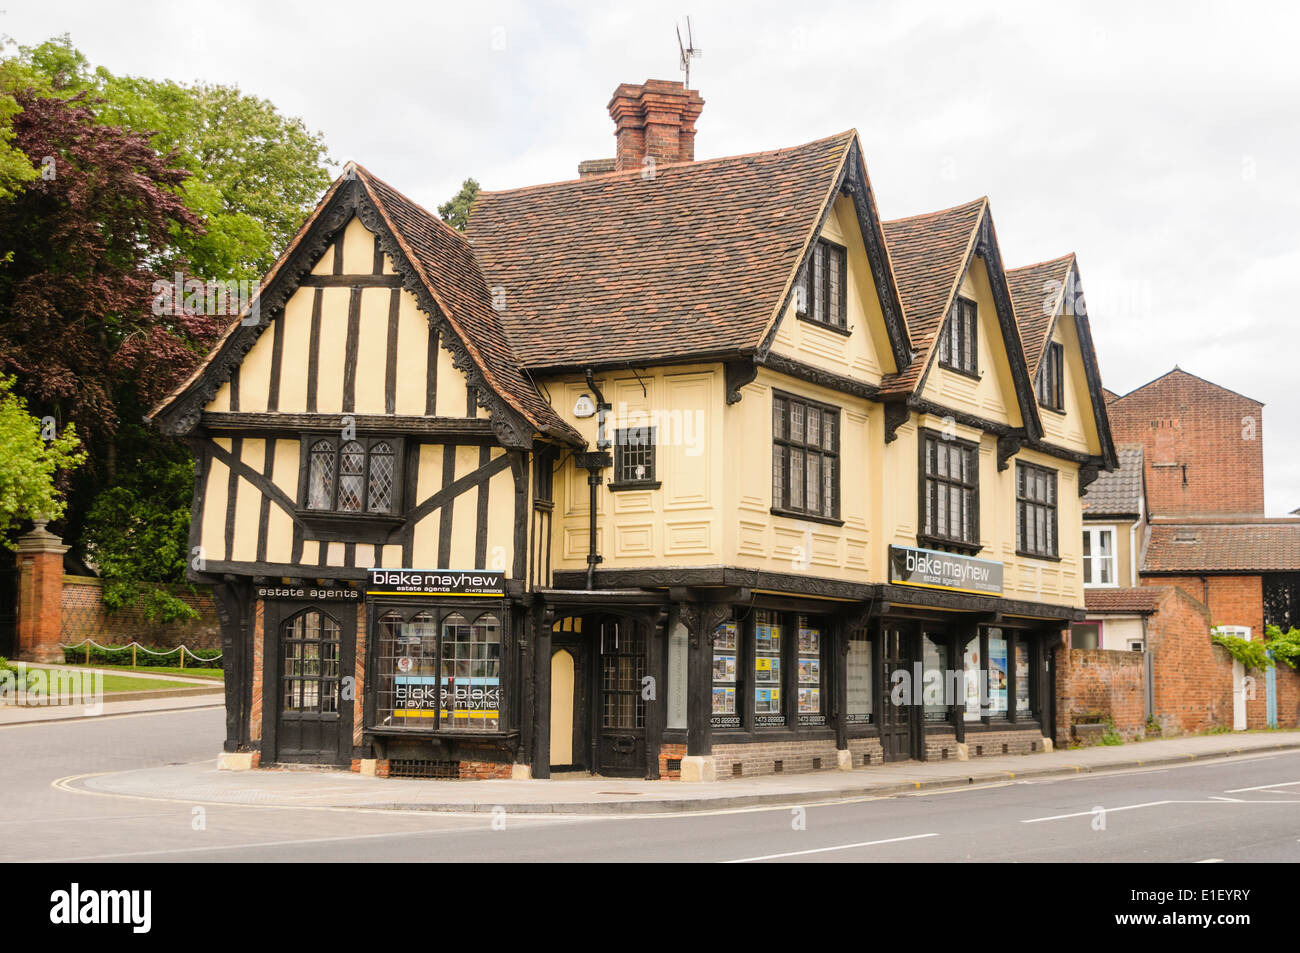 Blake mayhew estate agents housed in an old tudor for Building an estate